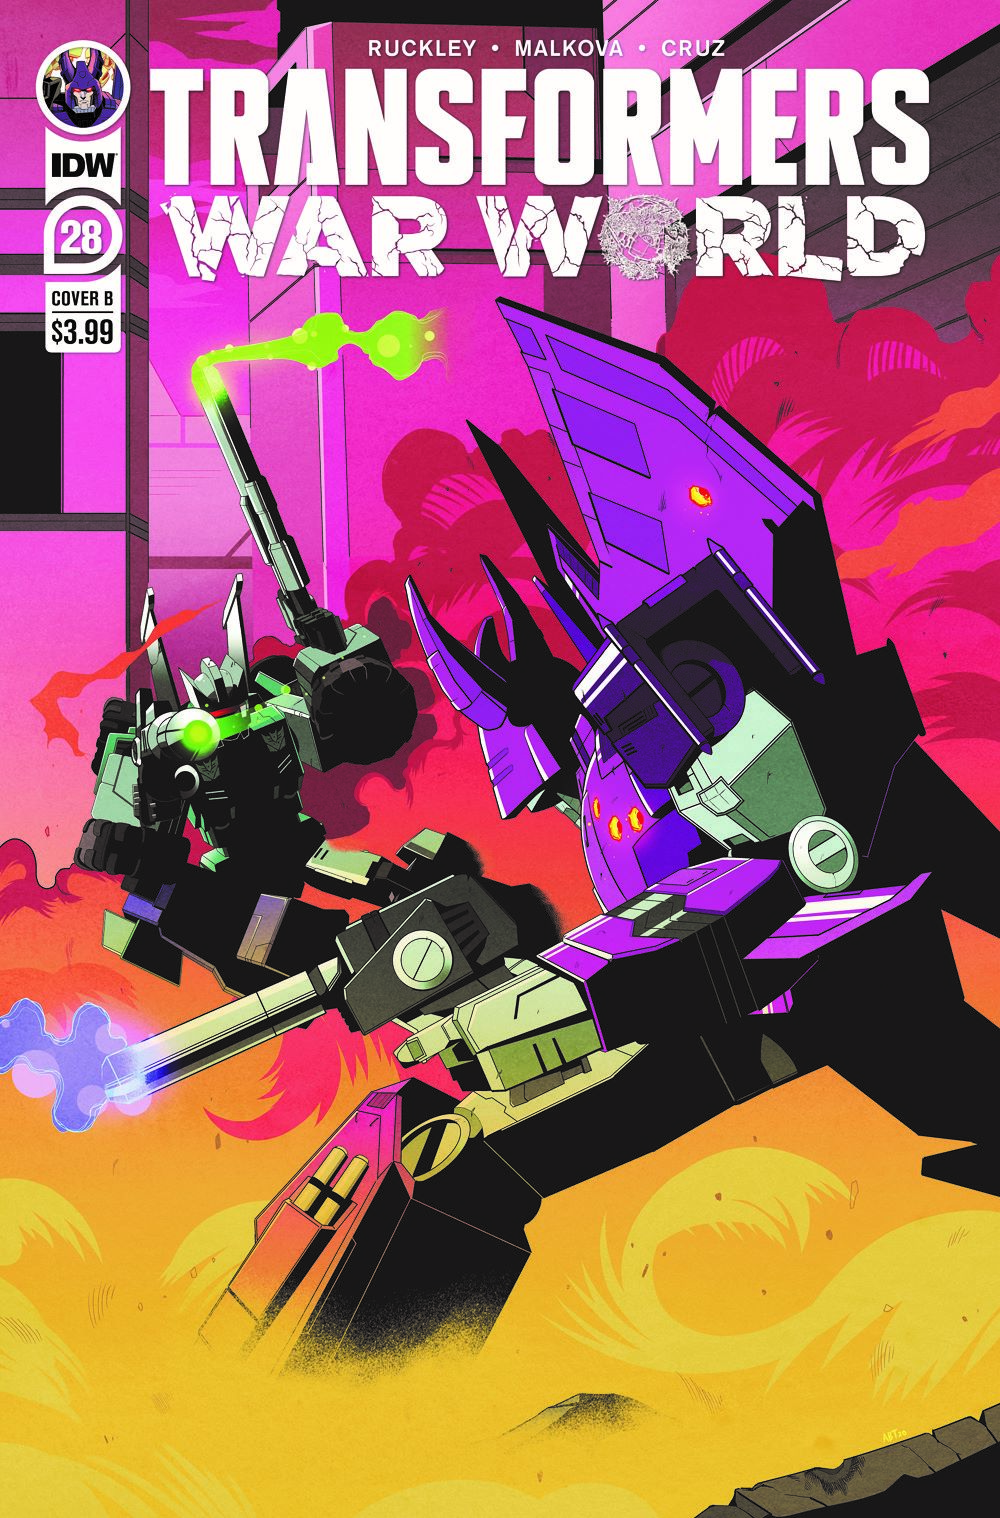 TF28-cvr-B ComicList: IDW Publishing New Releases for 03/31/2021